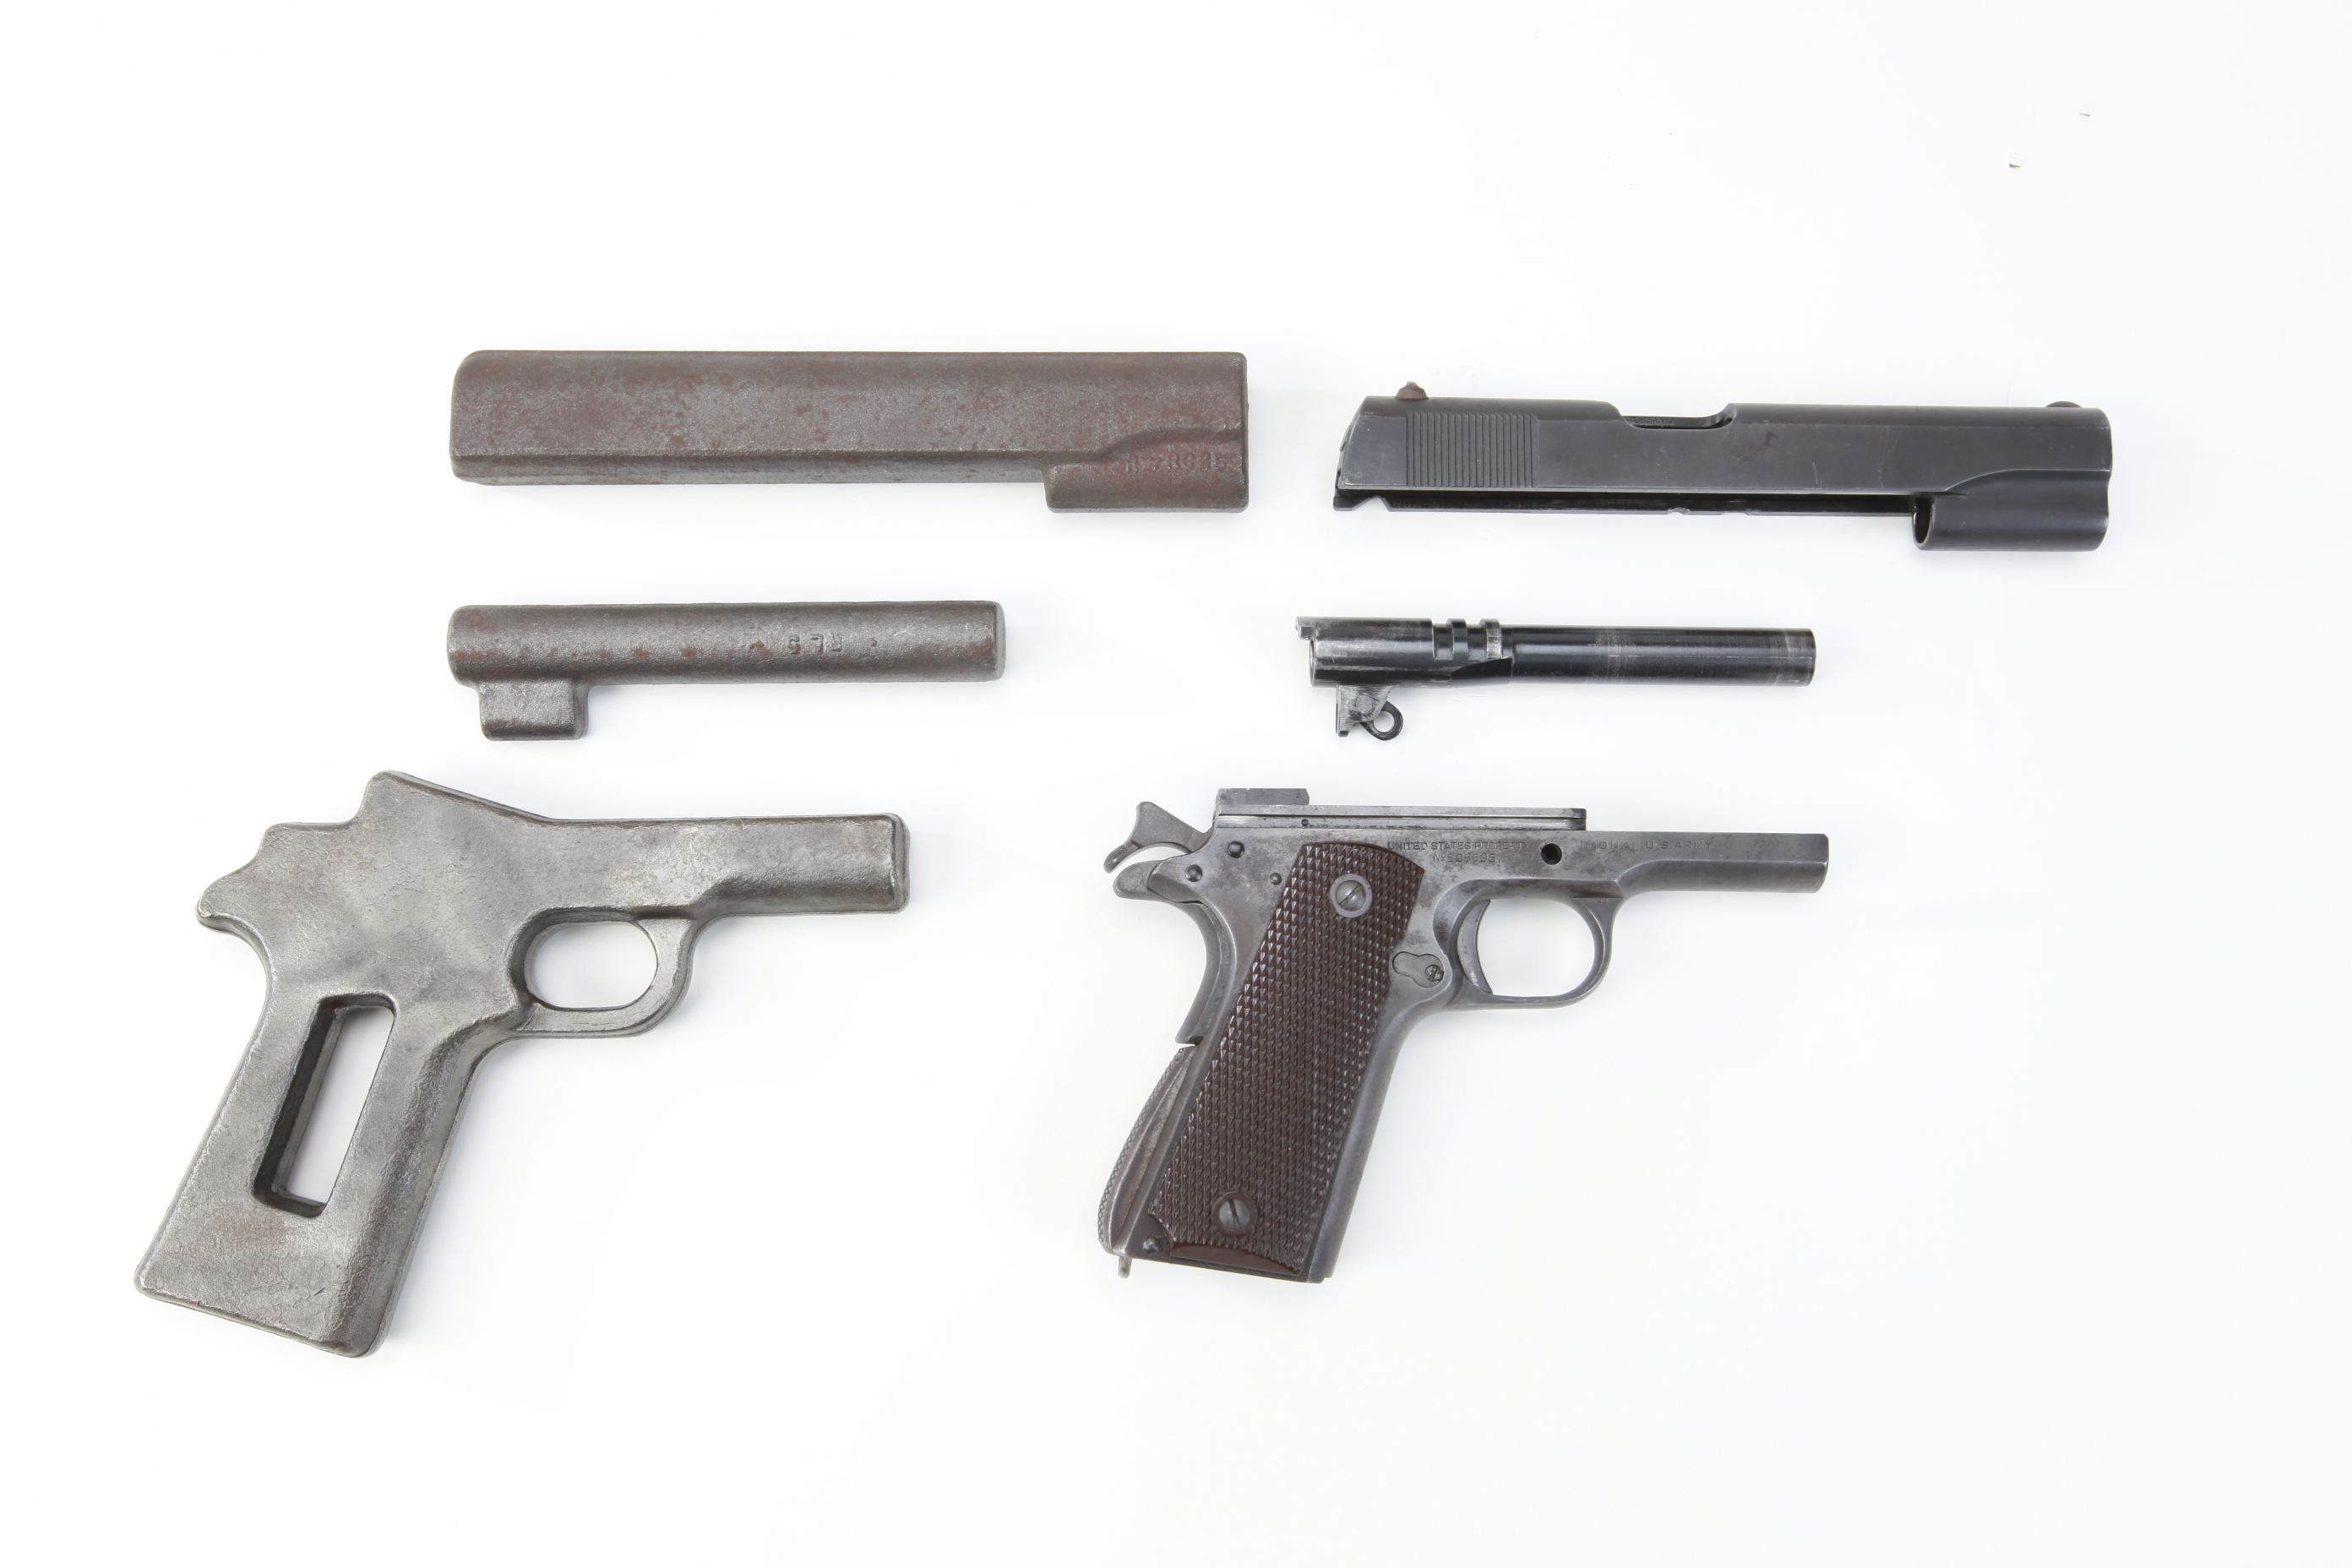 Colt M1911 Pistol Frame/Slide/Barrel Forgings